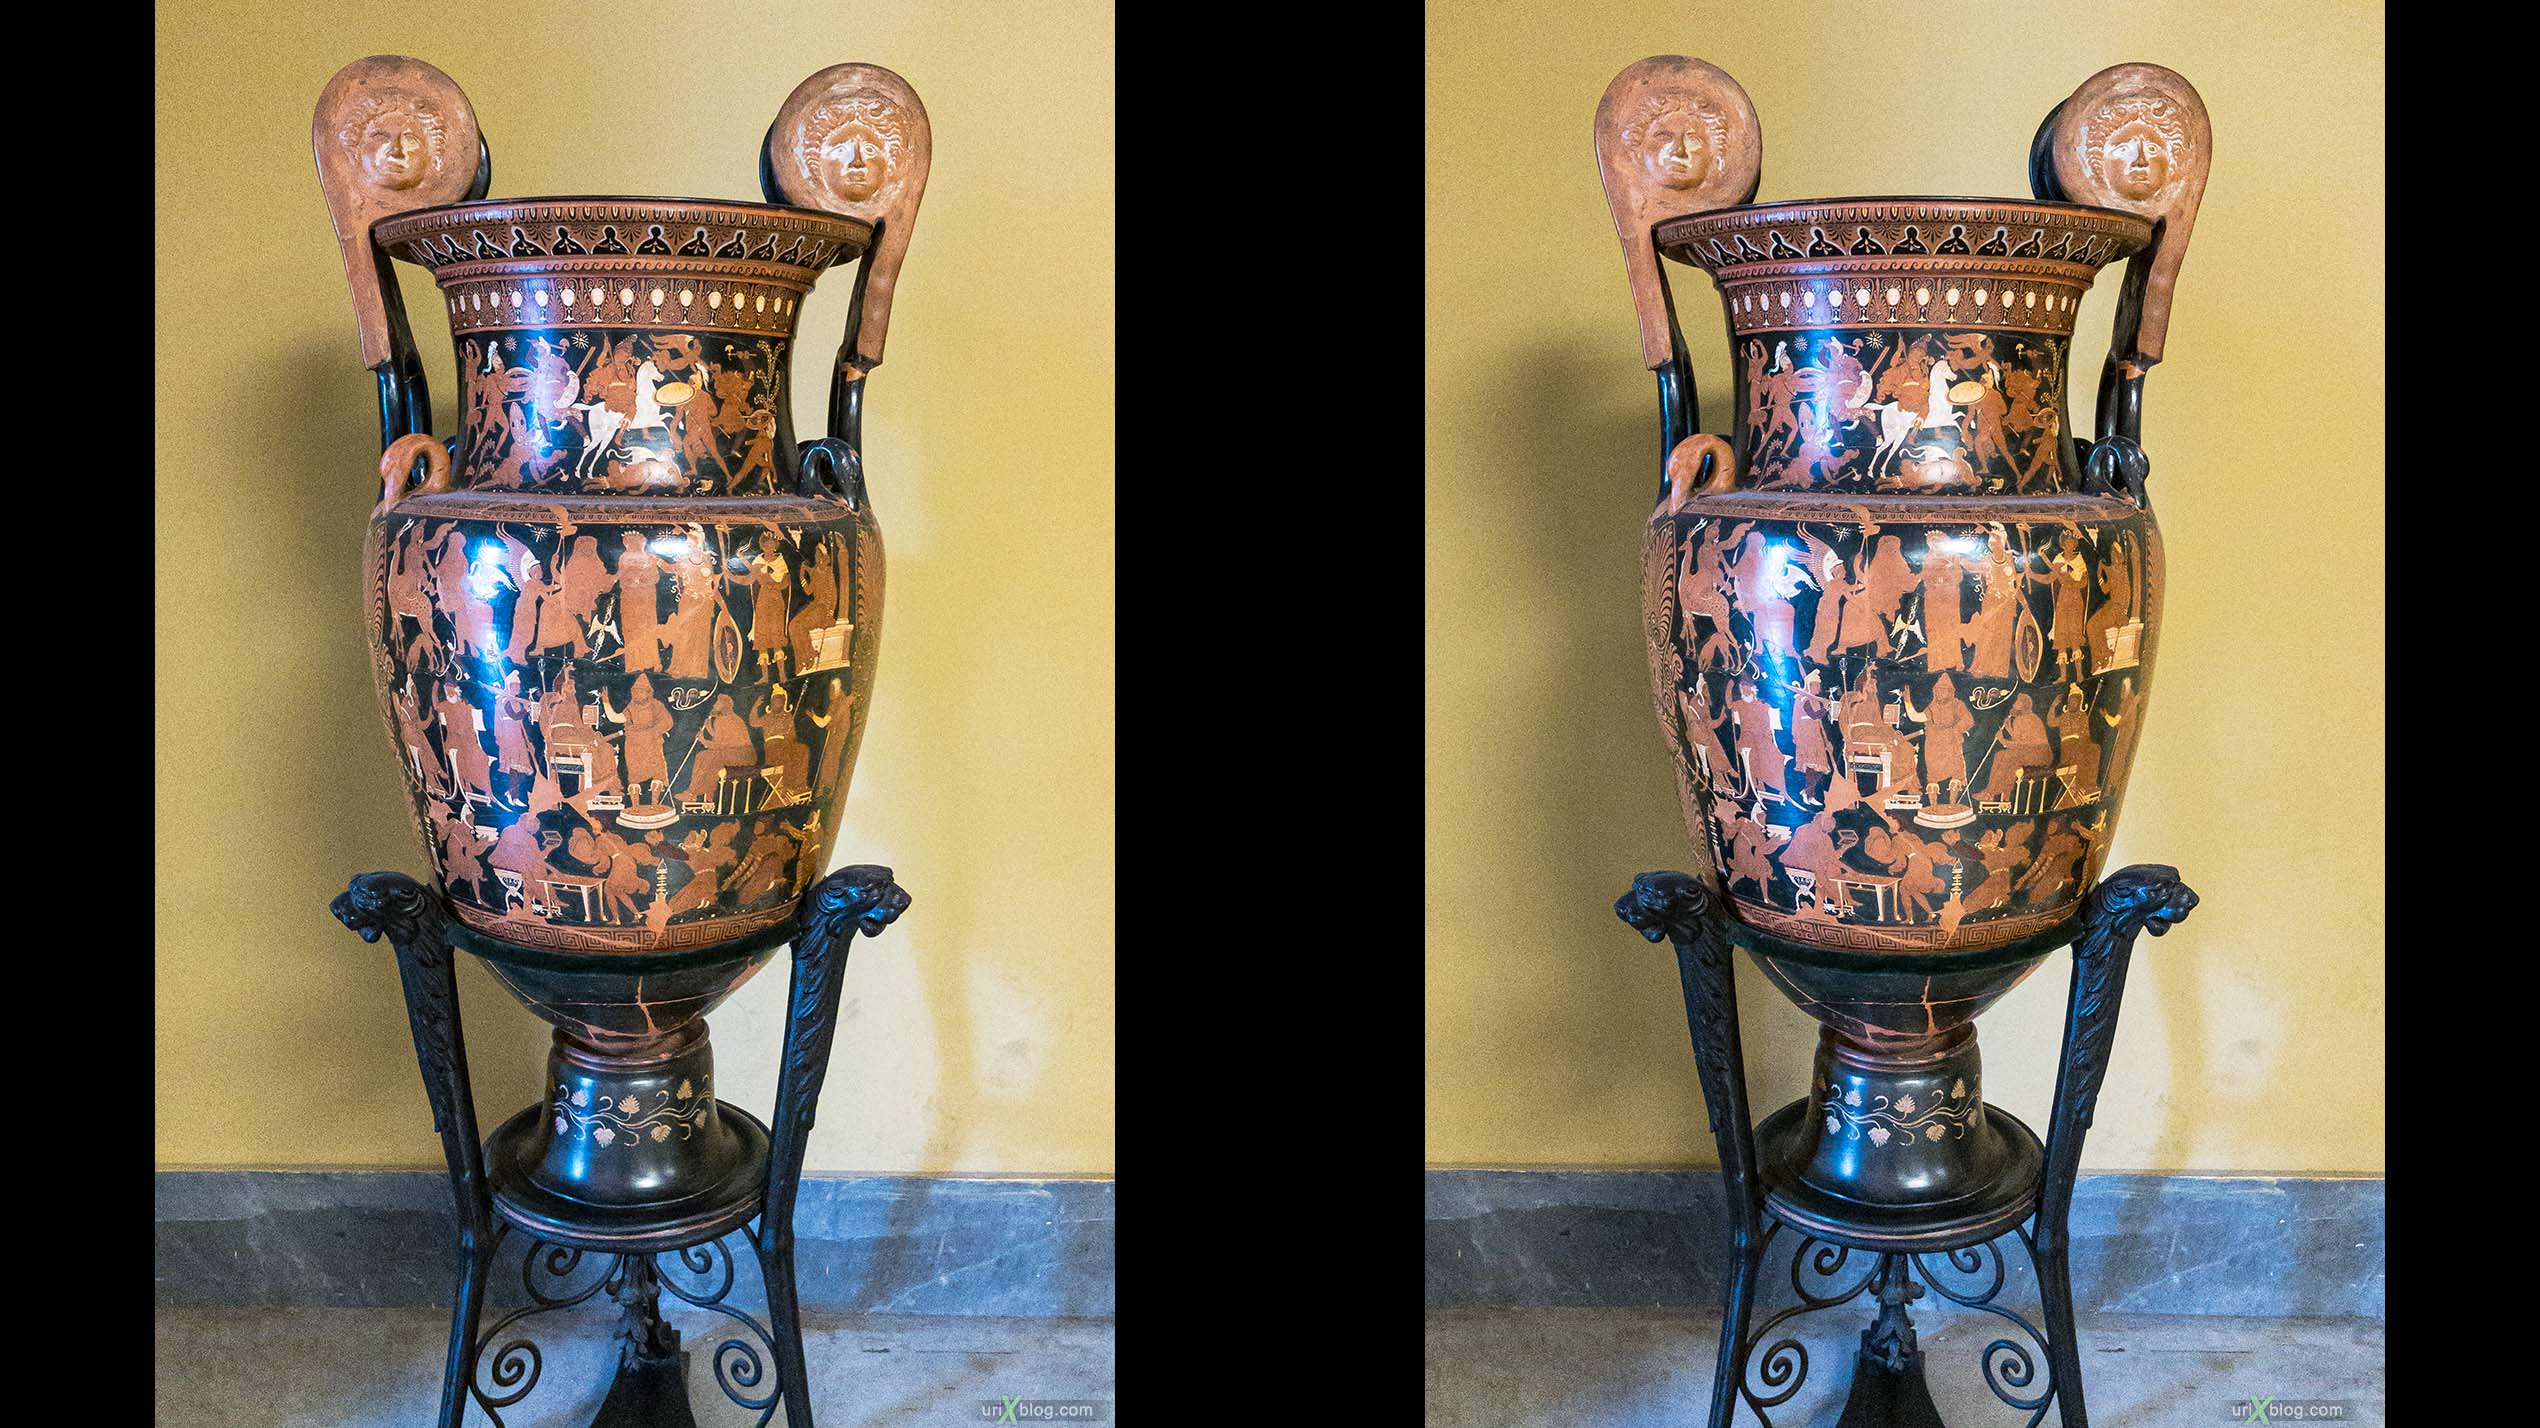 vase, amphora, National Archaeological Museum of Naples, ancient Rome, Pompei, exhibition, Naples, Italy, 3D, stereo pair, cross-eyed, crossview, cross view stereo pair, stereoscopic